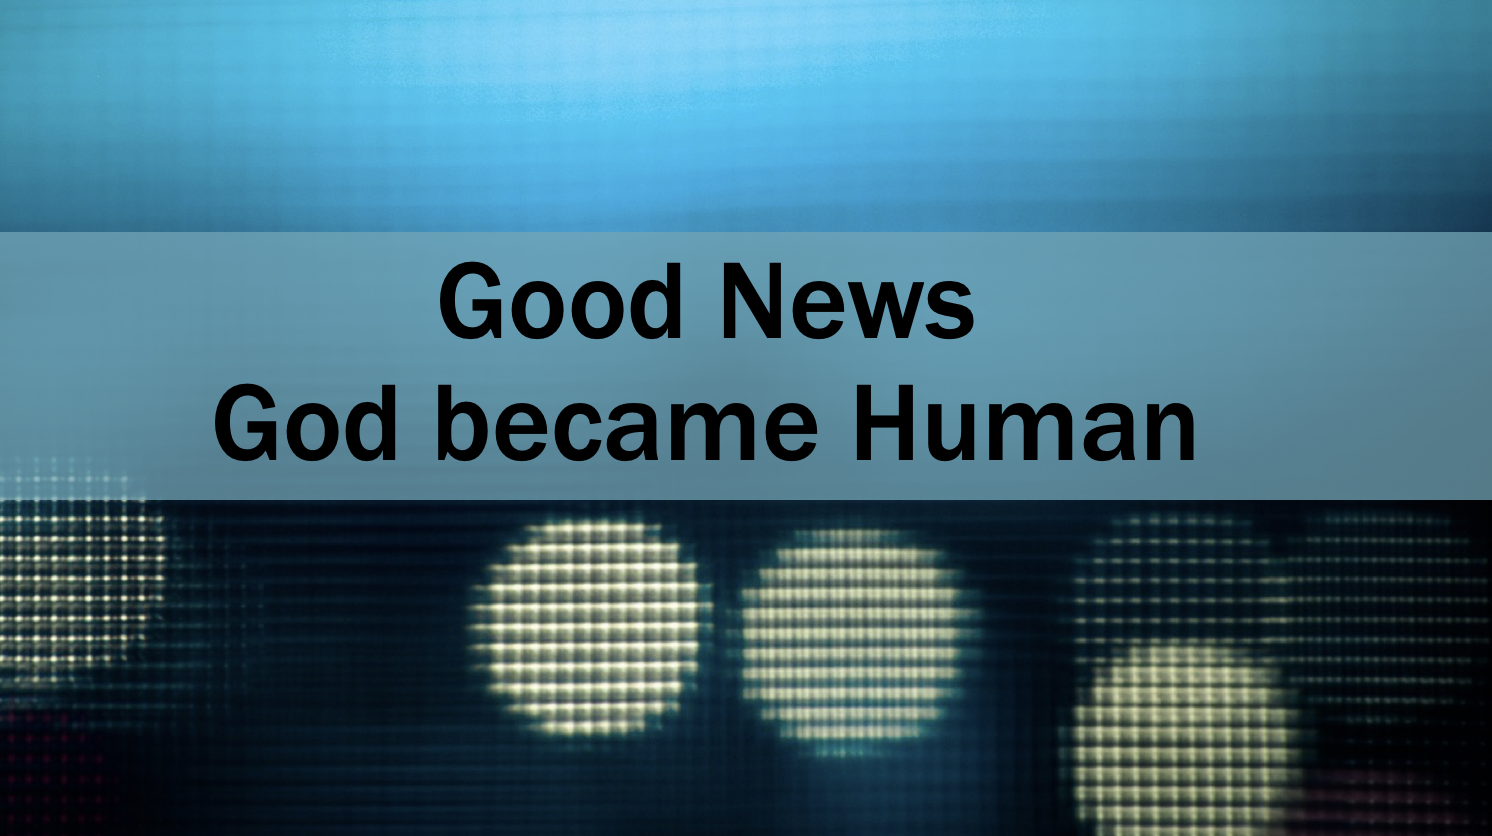 Good News- God became Human